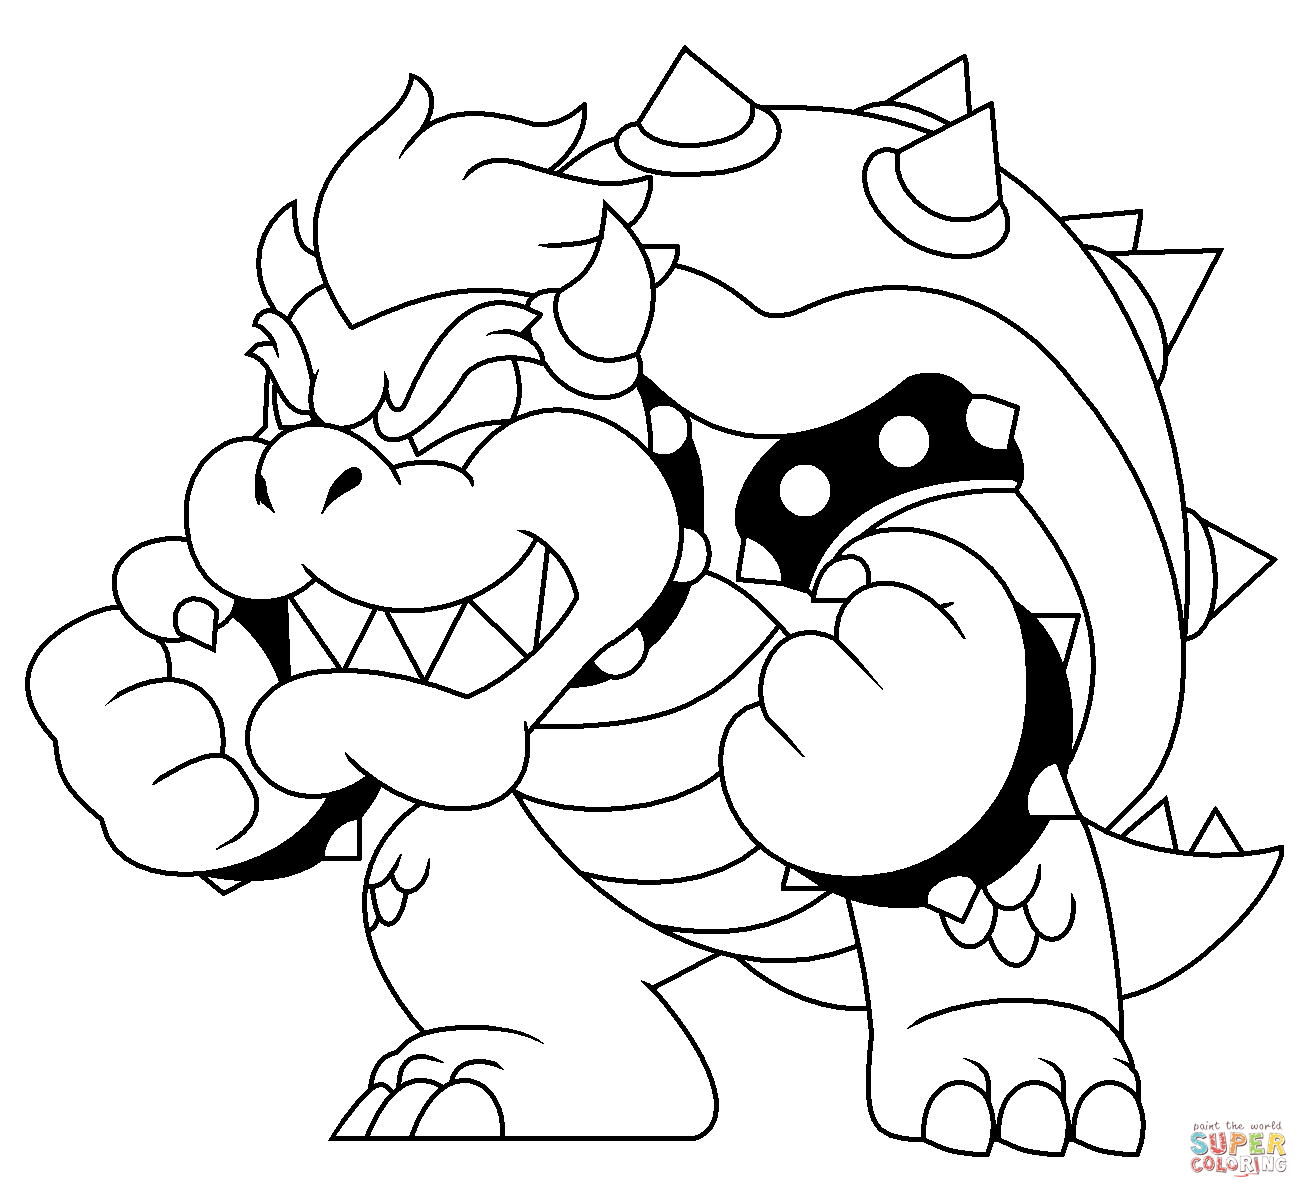 bowser and bowser jr coloring pages | Dry Bowser Drawing at GetDrawings.com | Free for personal ...